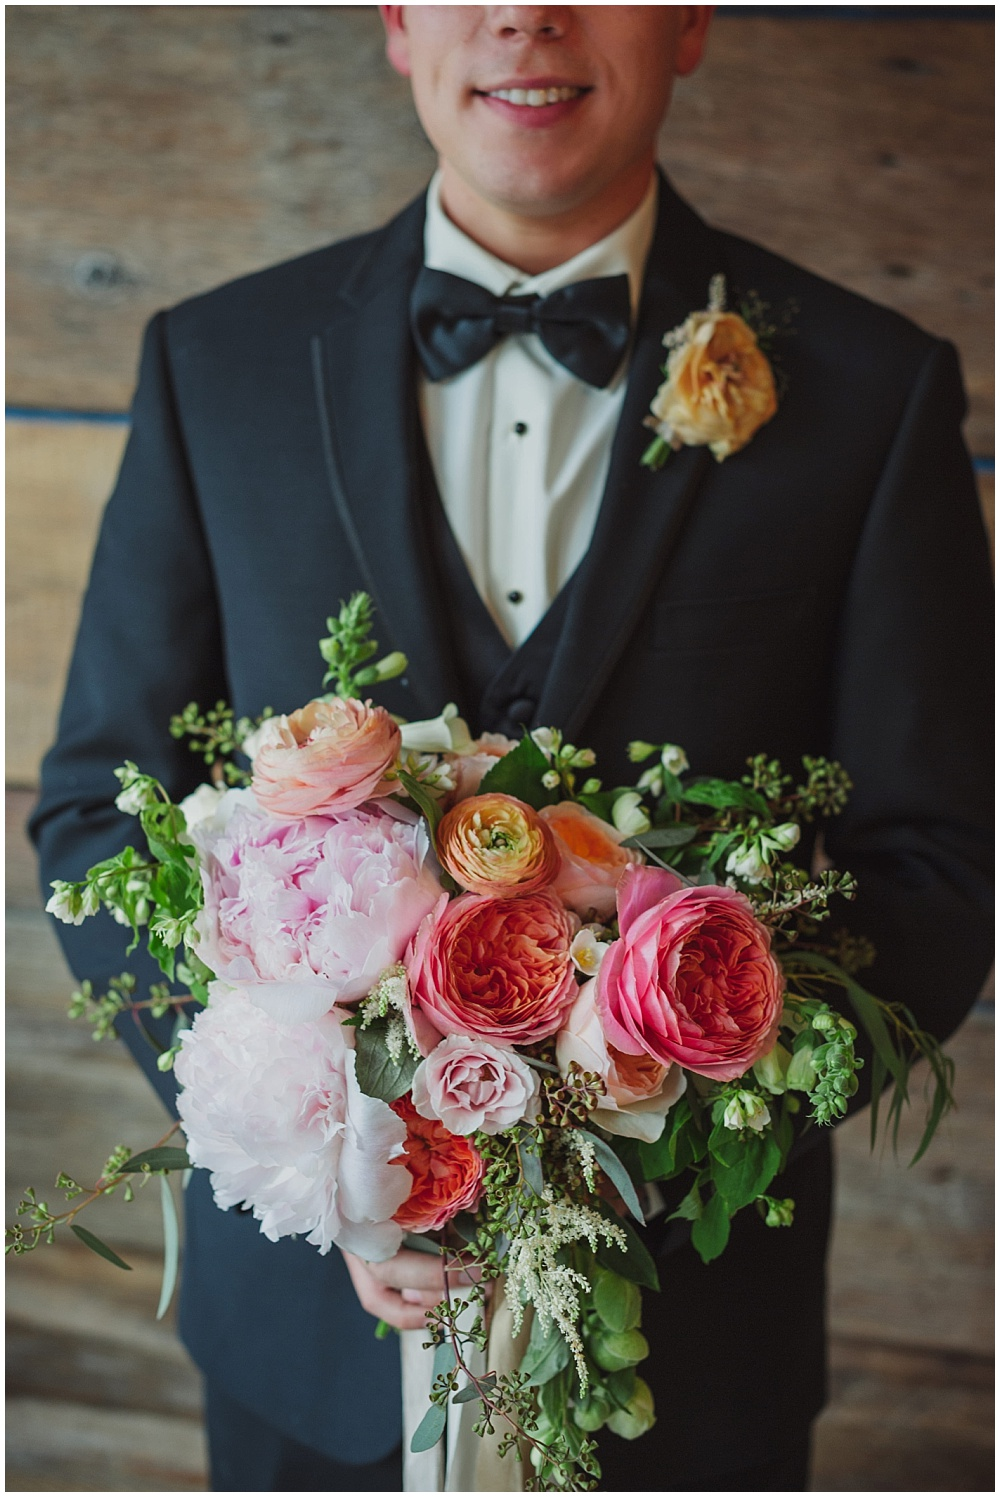 Groom with blush spring bridal bouquet   Ritz Charles Garden Pavilion Wedding by Stacy Able Photography & Jessica Dum Wedding Coordination